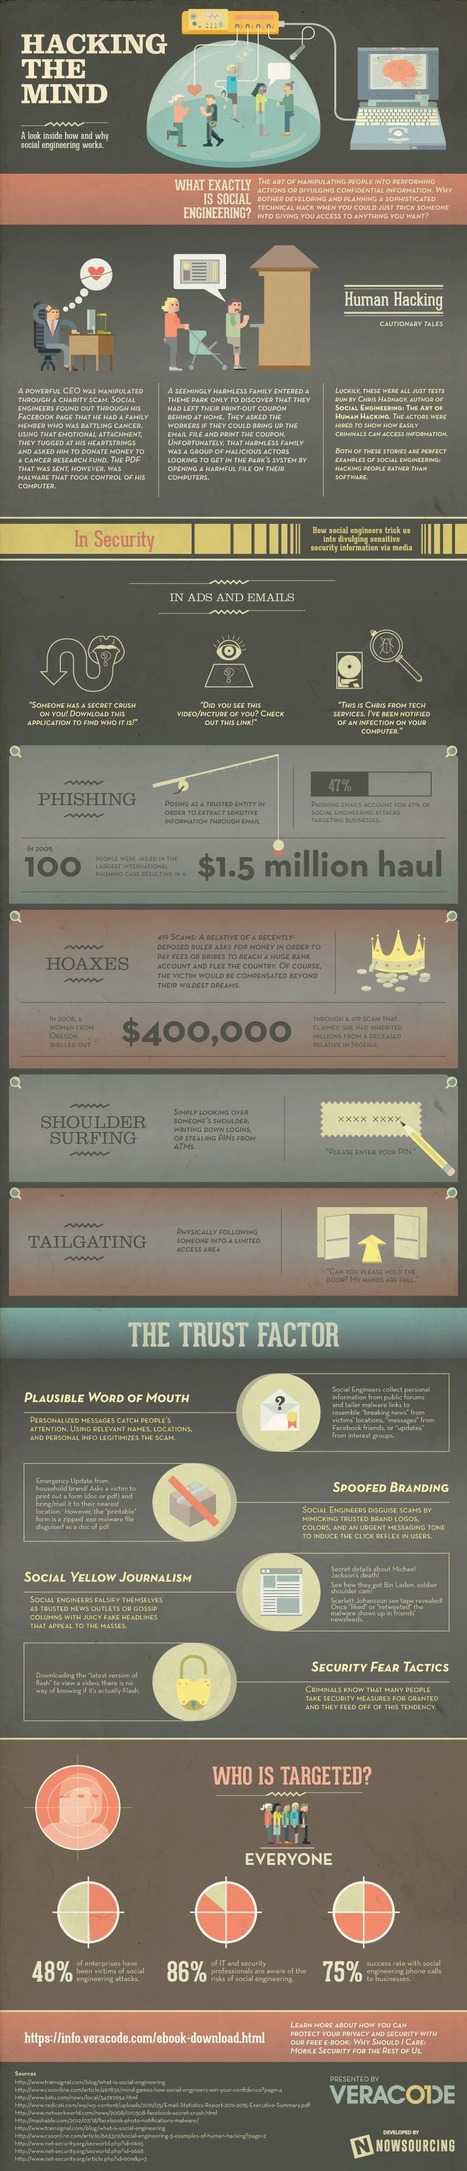 How and Why Social Engineering Works [Infographic] | Didactics and Technology in Education | Scoop.it